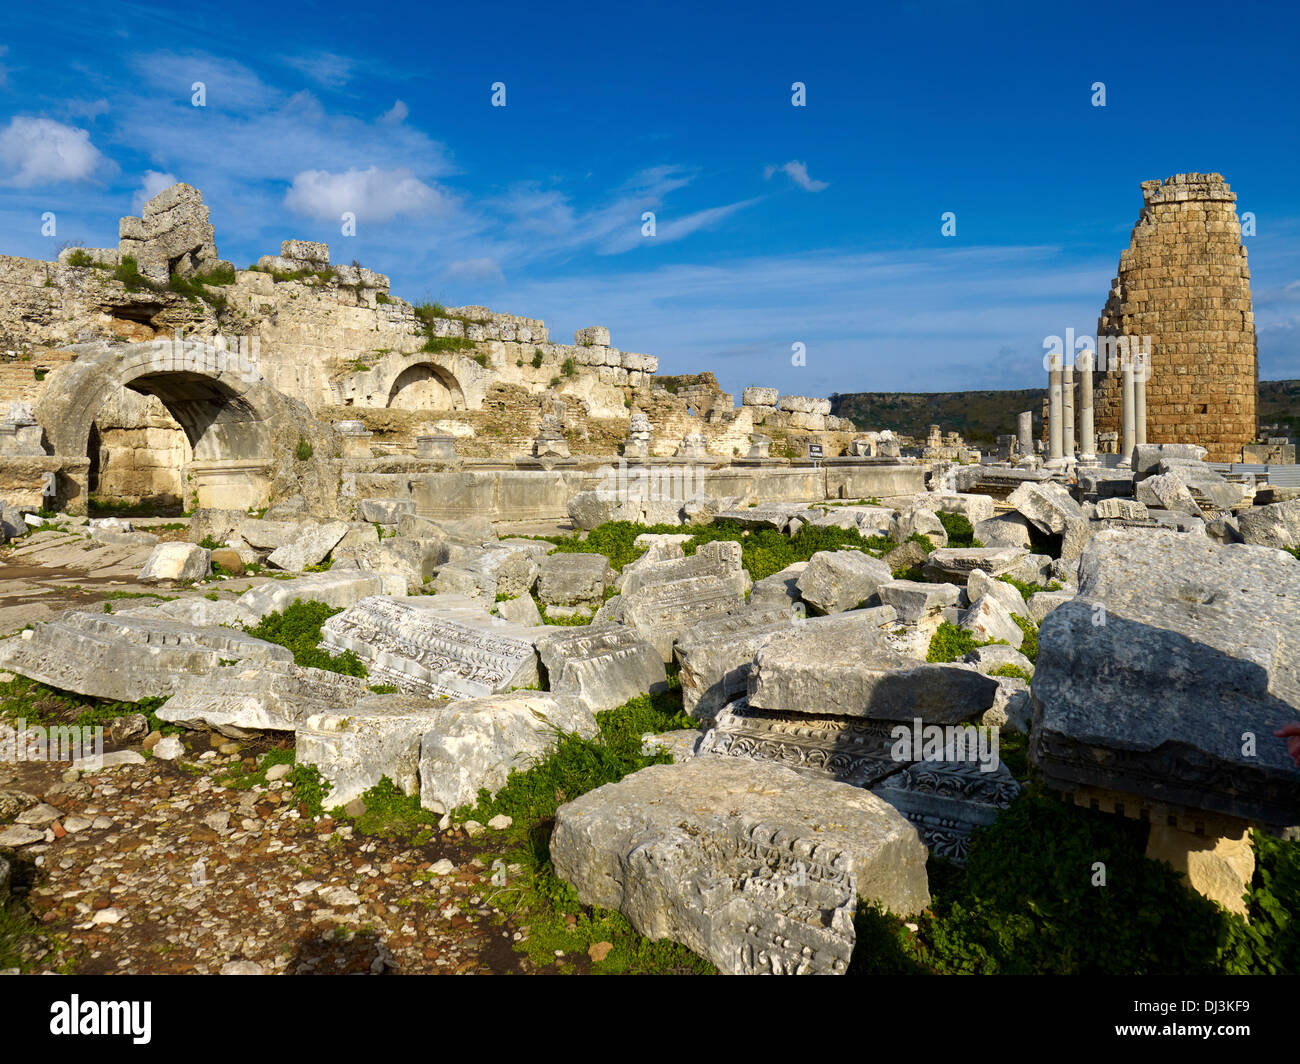 Nymphaeum and Hellenistic city gate, ancient city of Perga, Turkey - Stock Image